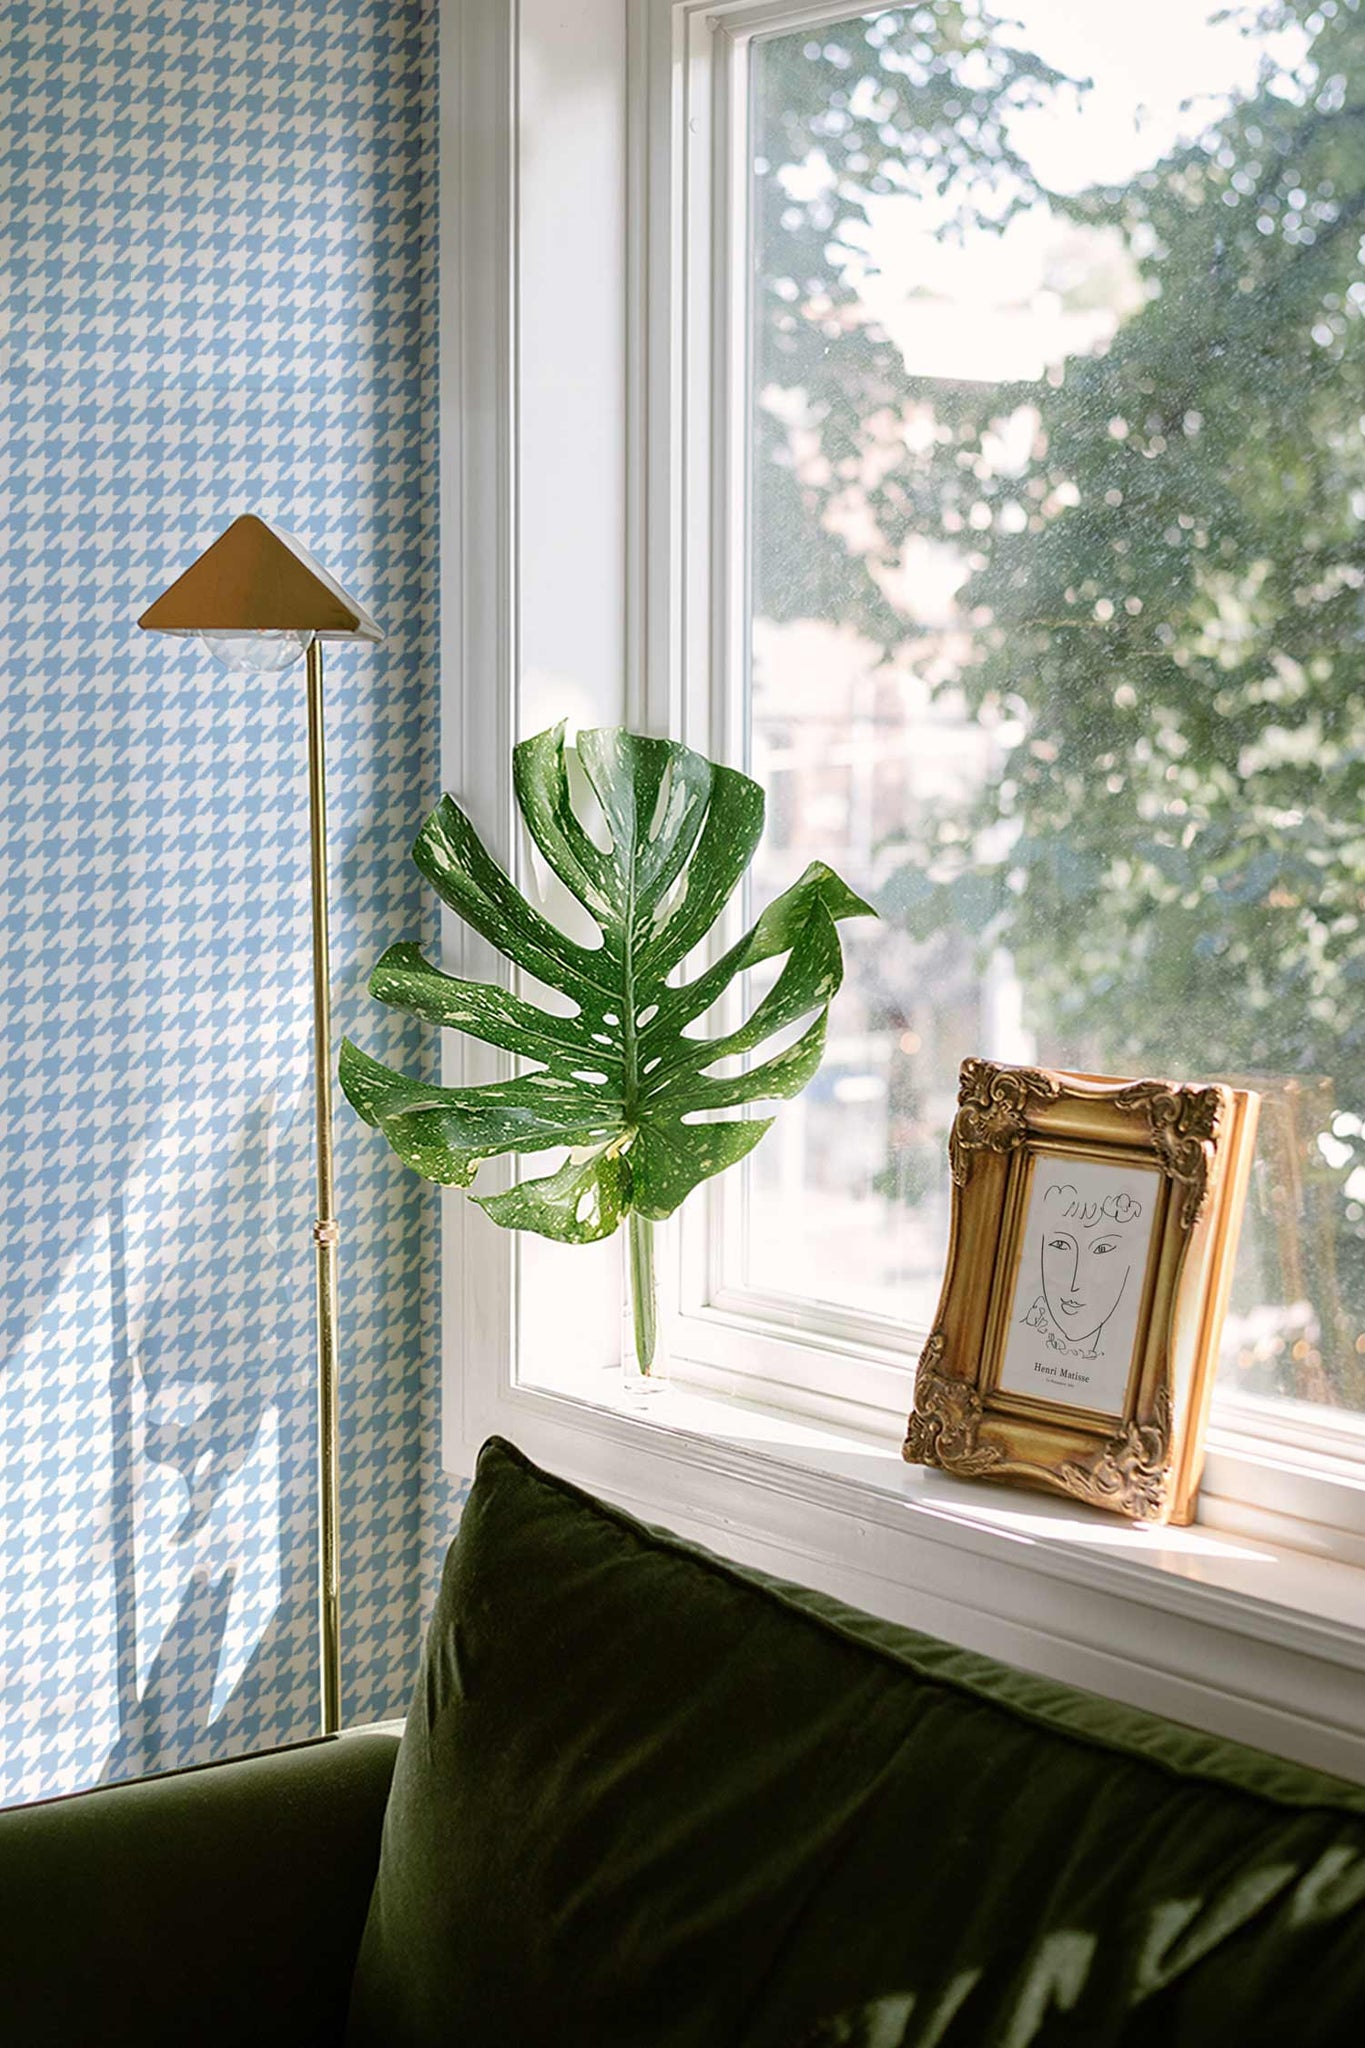 Blue chic houndstooth pattern wallpaper with monstera leaf and golden picture frame